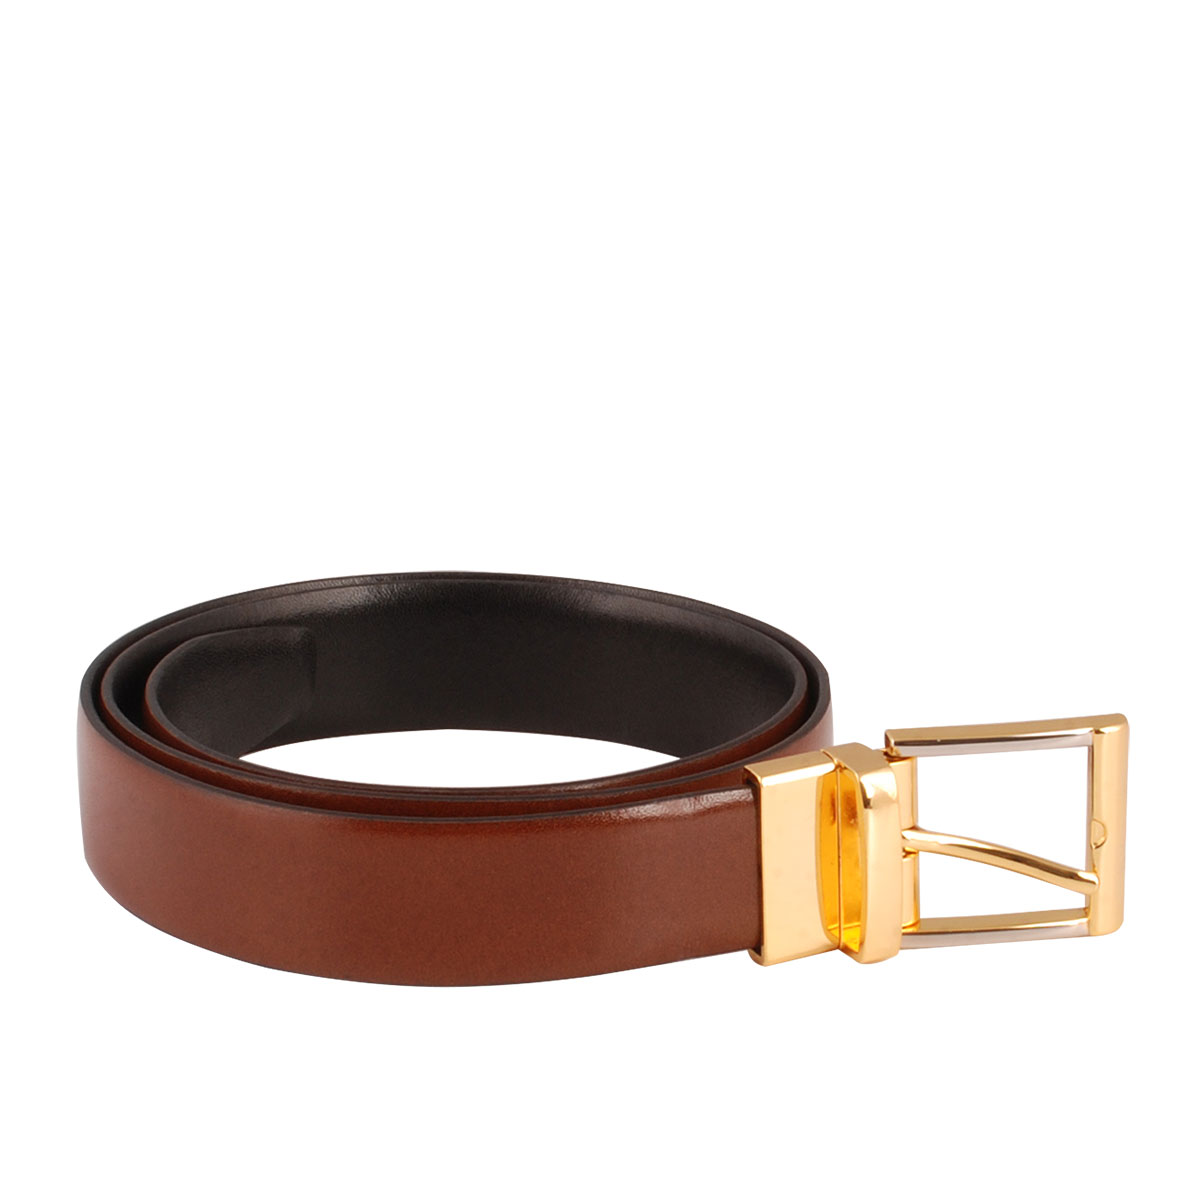 Reversible Belt Tan/Black